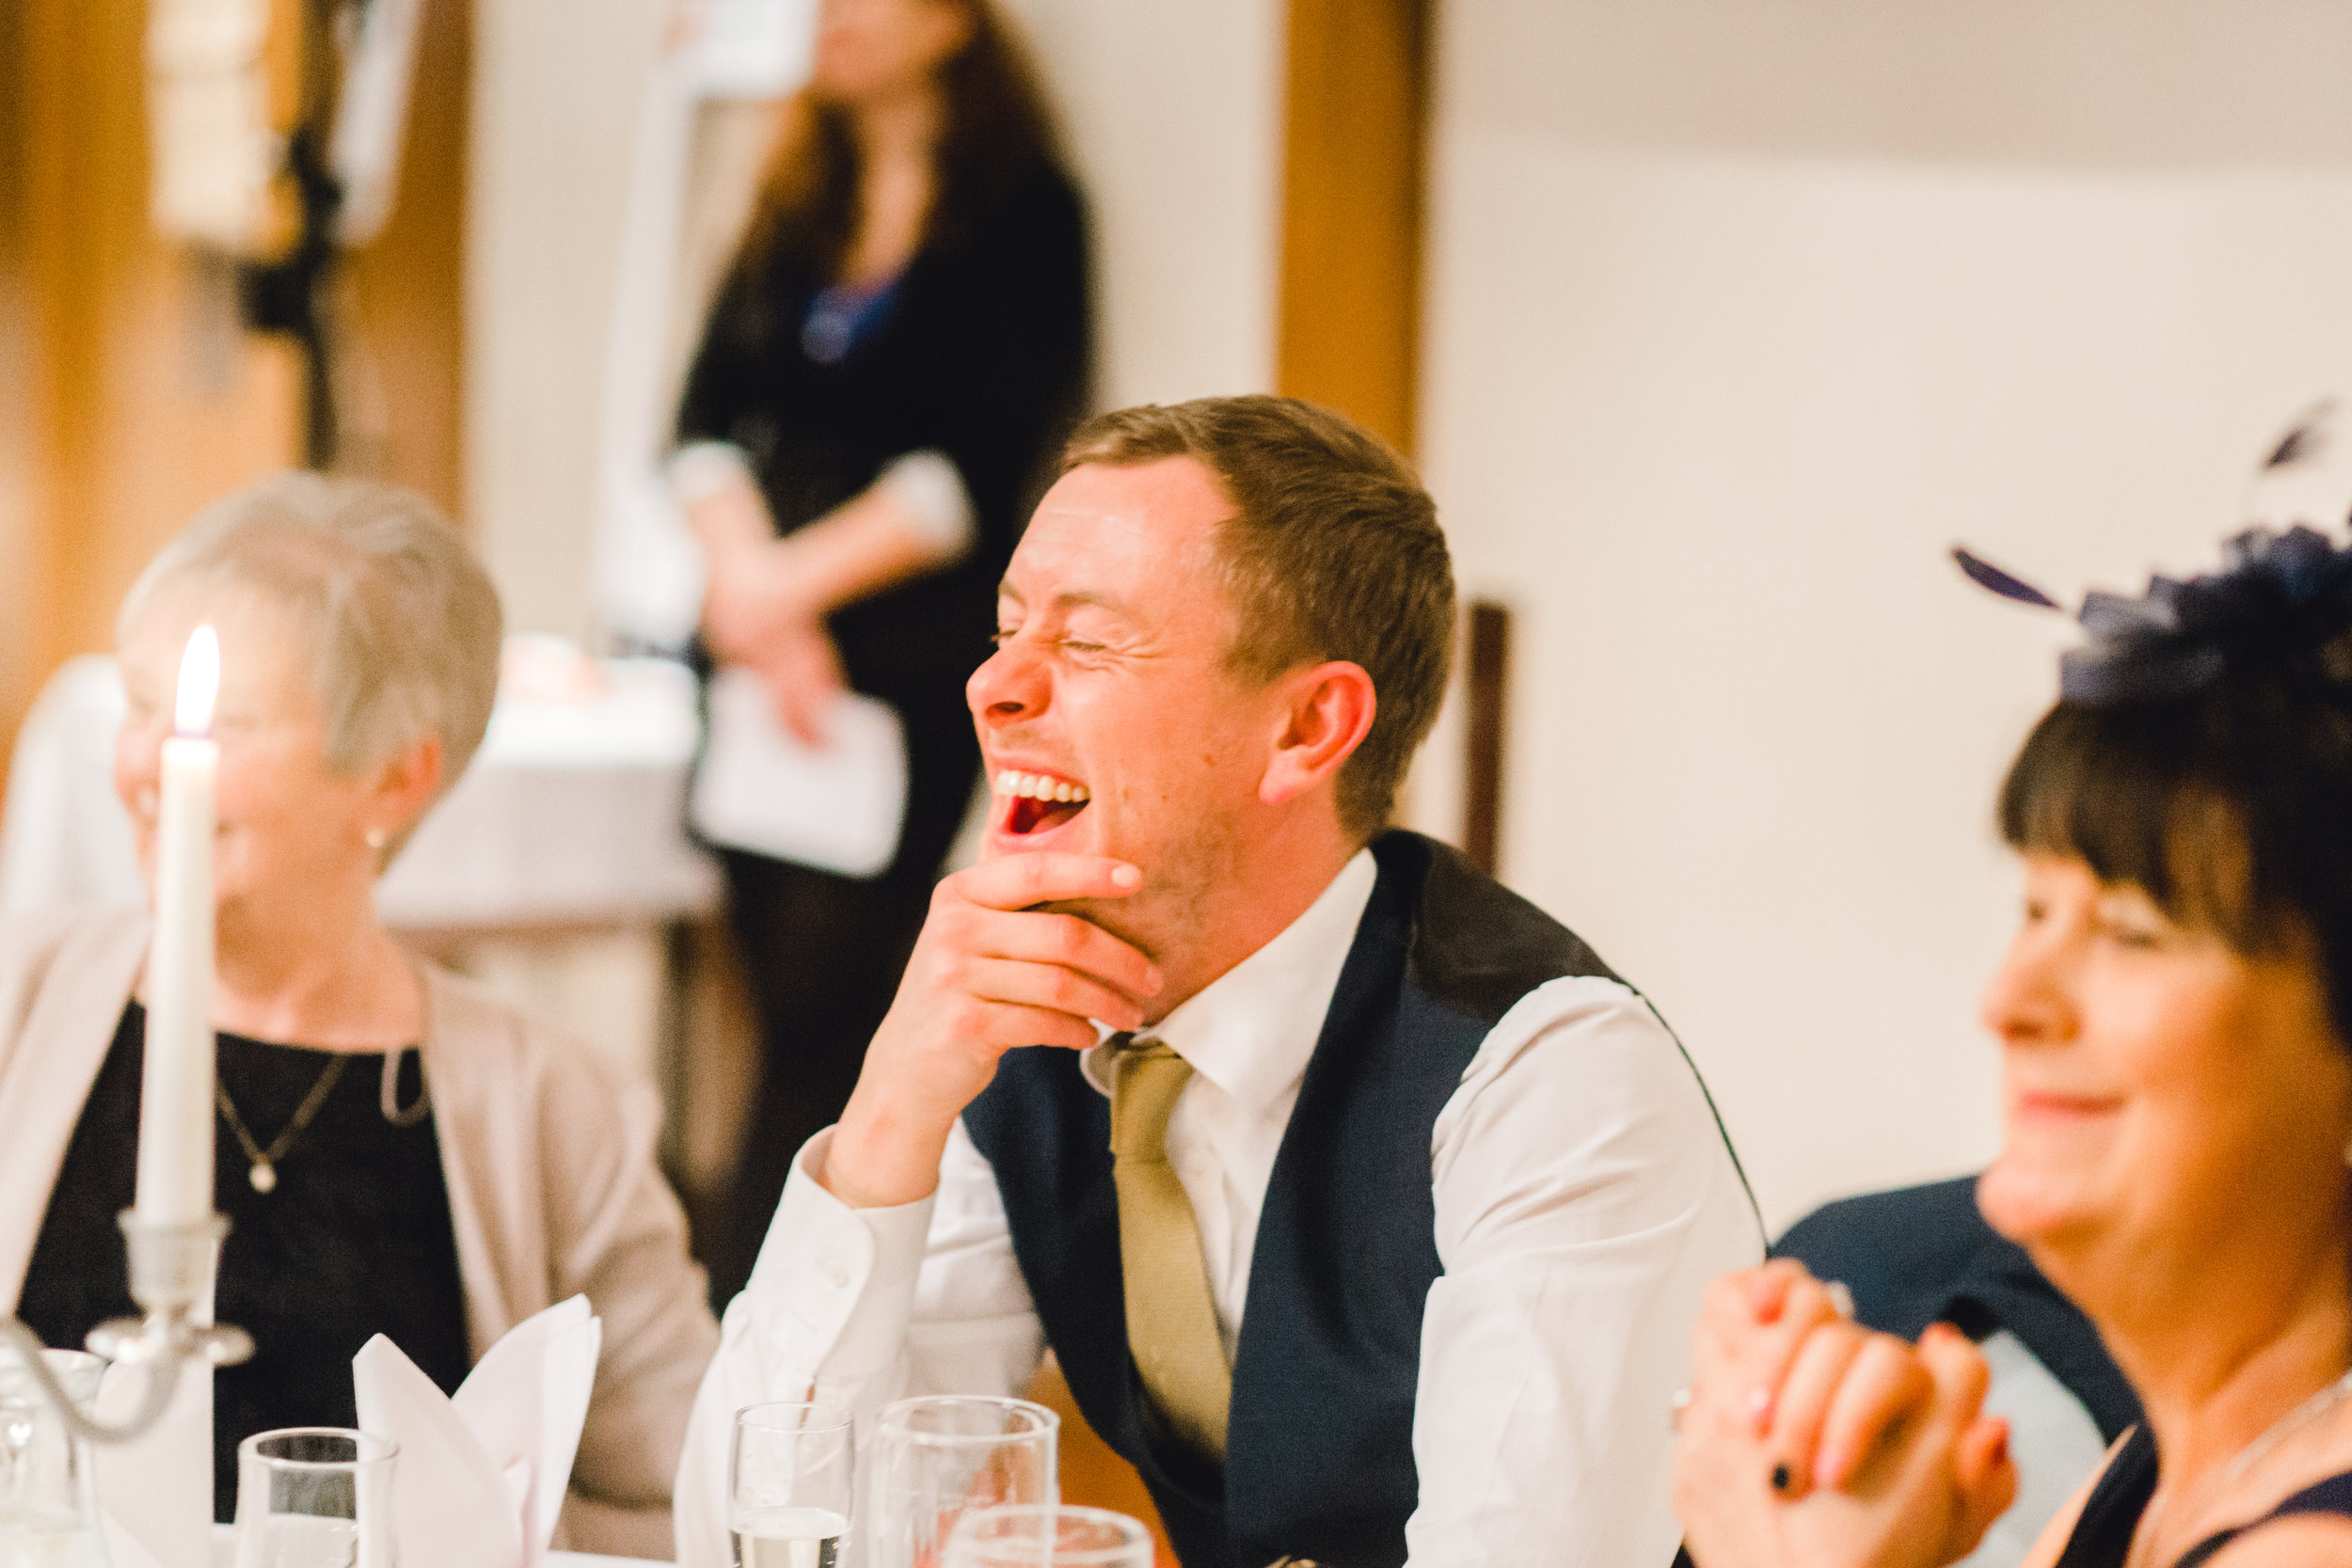 Wedding guest reaction during speeches